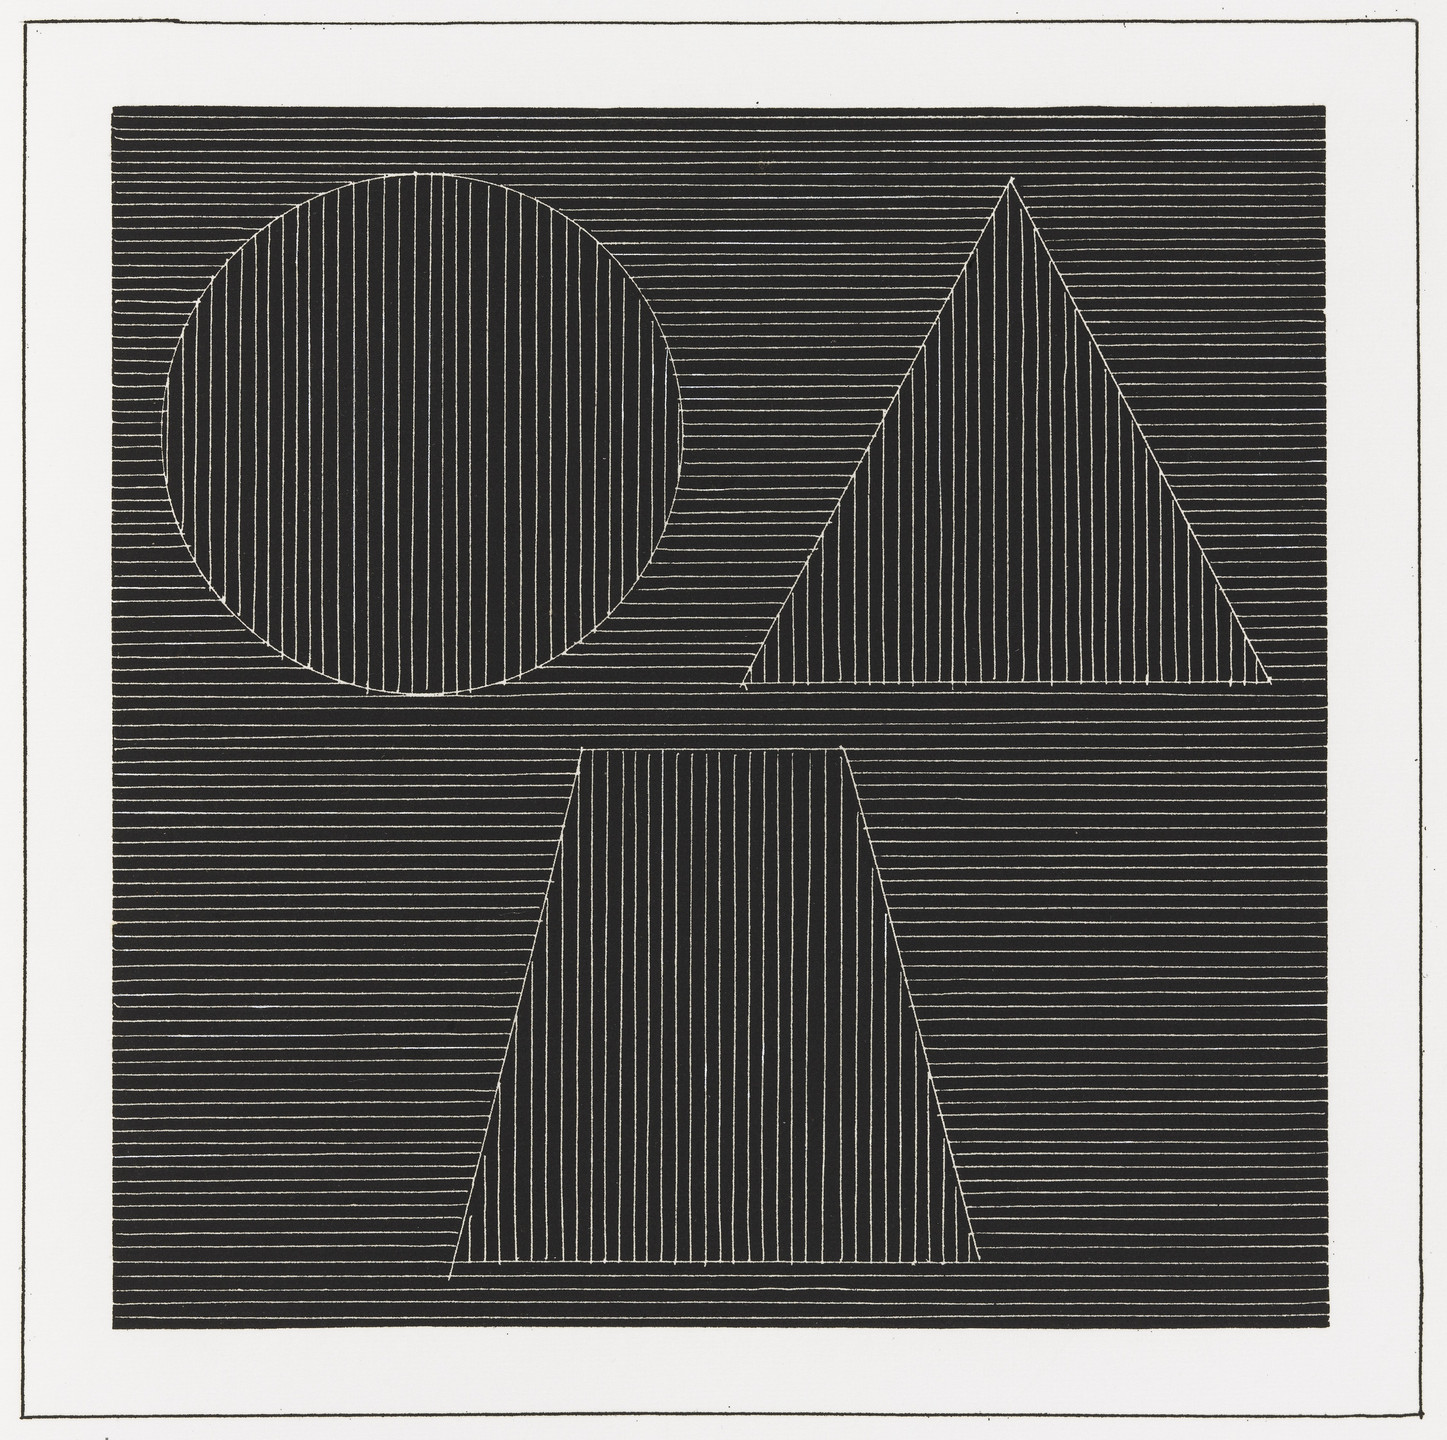 Sol LeWitt. Plate (folio 34) from Six Geometric Figures and All Their Combinations, Volume I. 1980